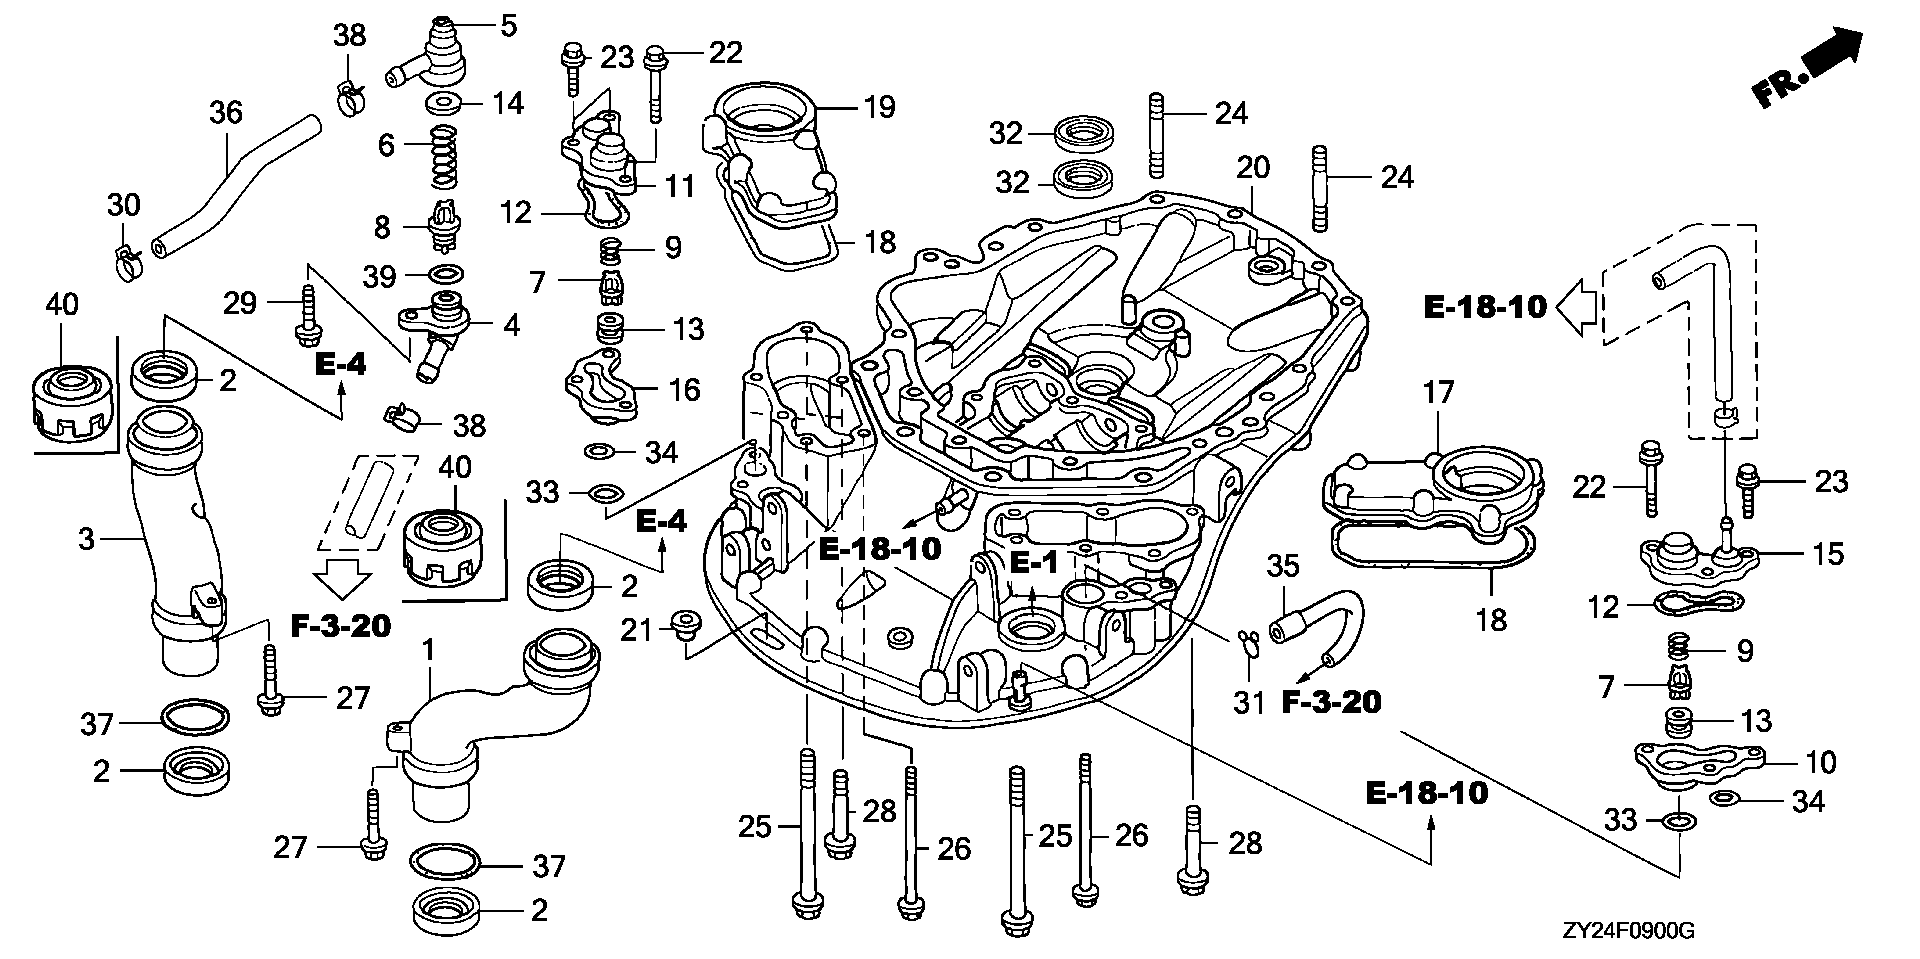 yamaha 8hp wiring diagram yamaha schematics wiring diagram